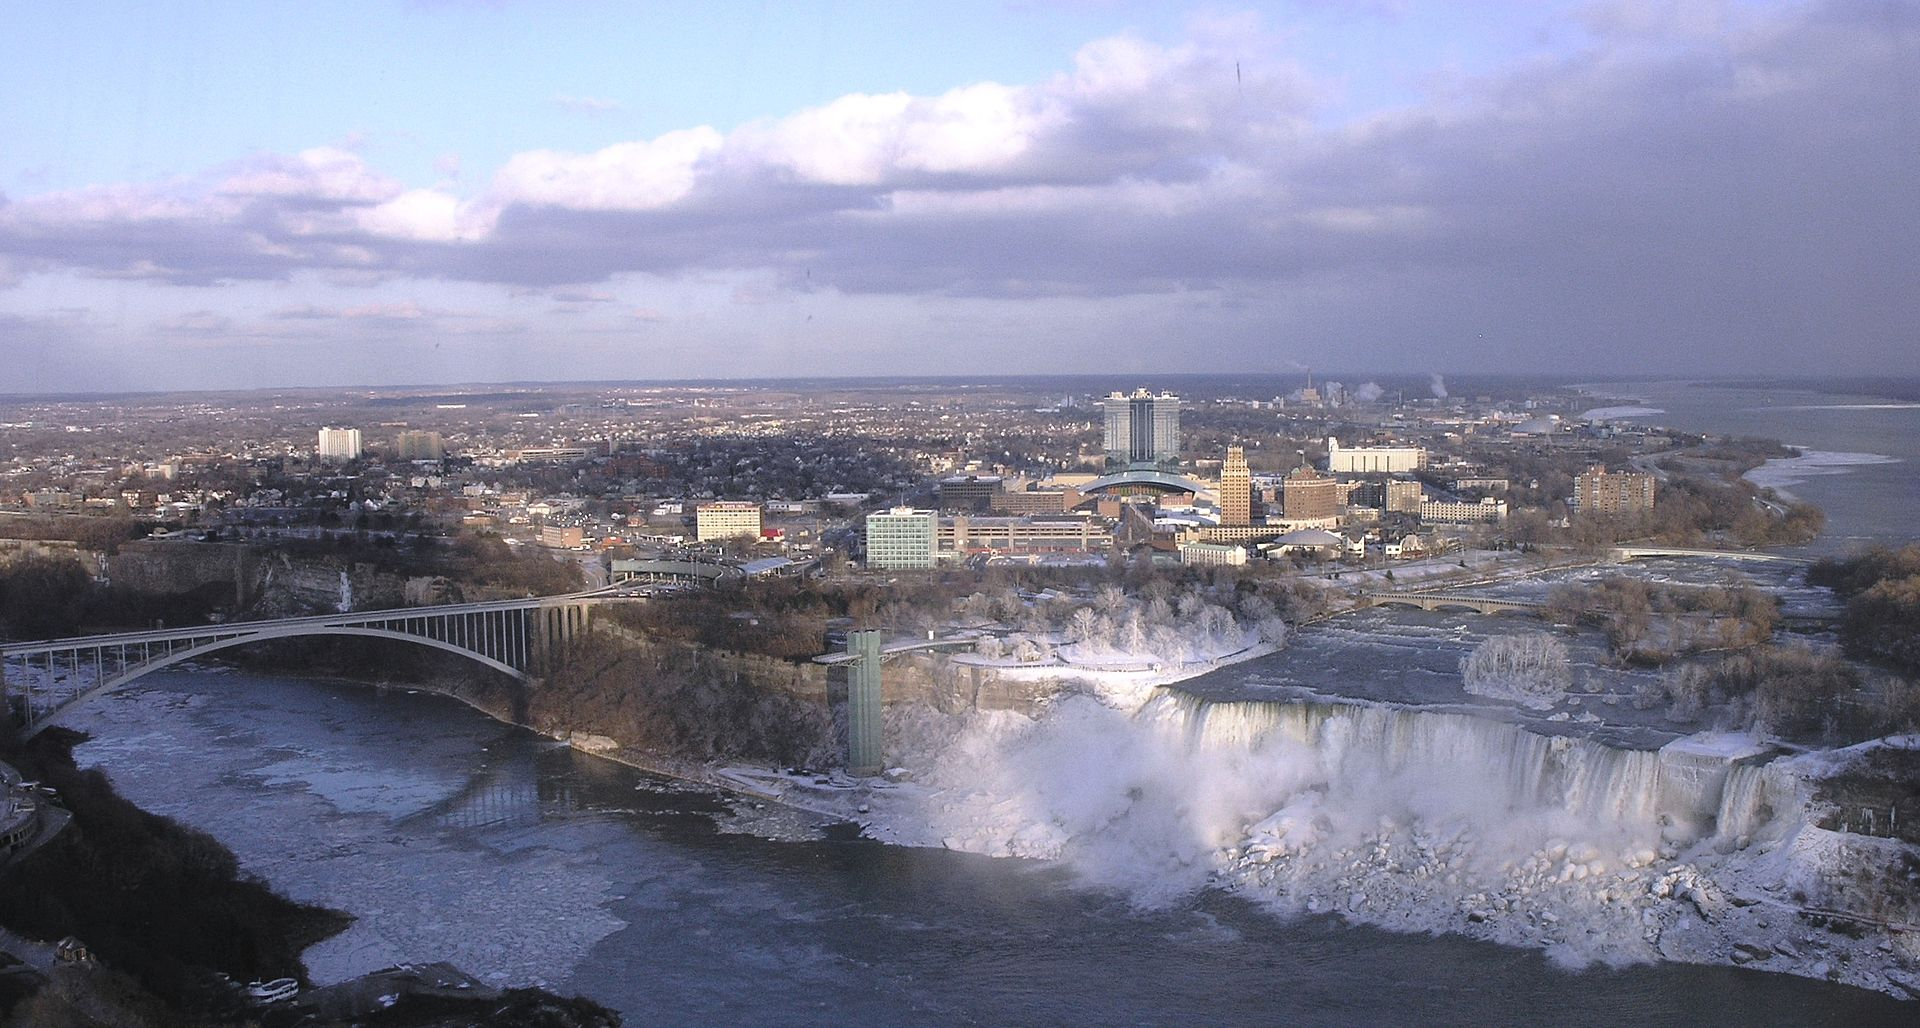 The city of Niagara Falls. In the foreground are the waterfalls known as the American Falls and Bridal Veil Falls, respectively, from left to right.